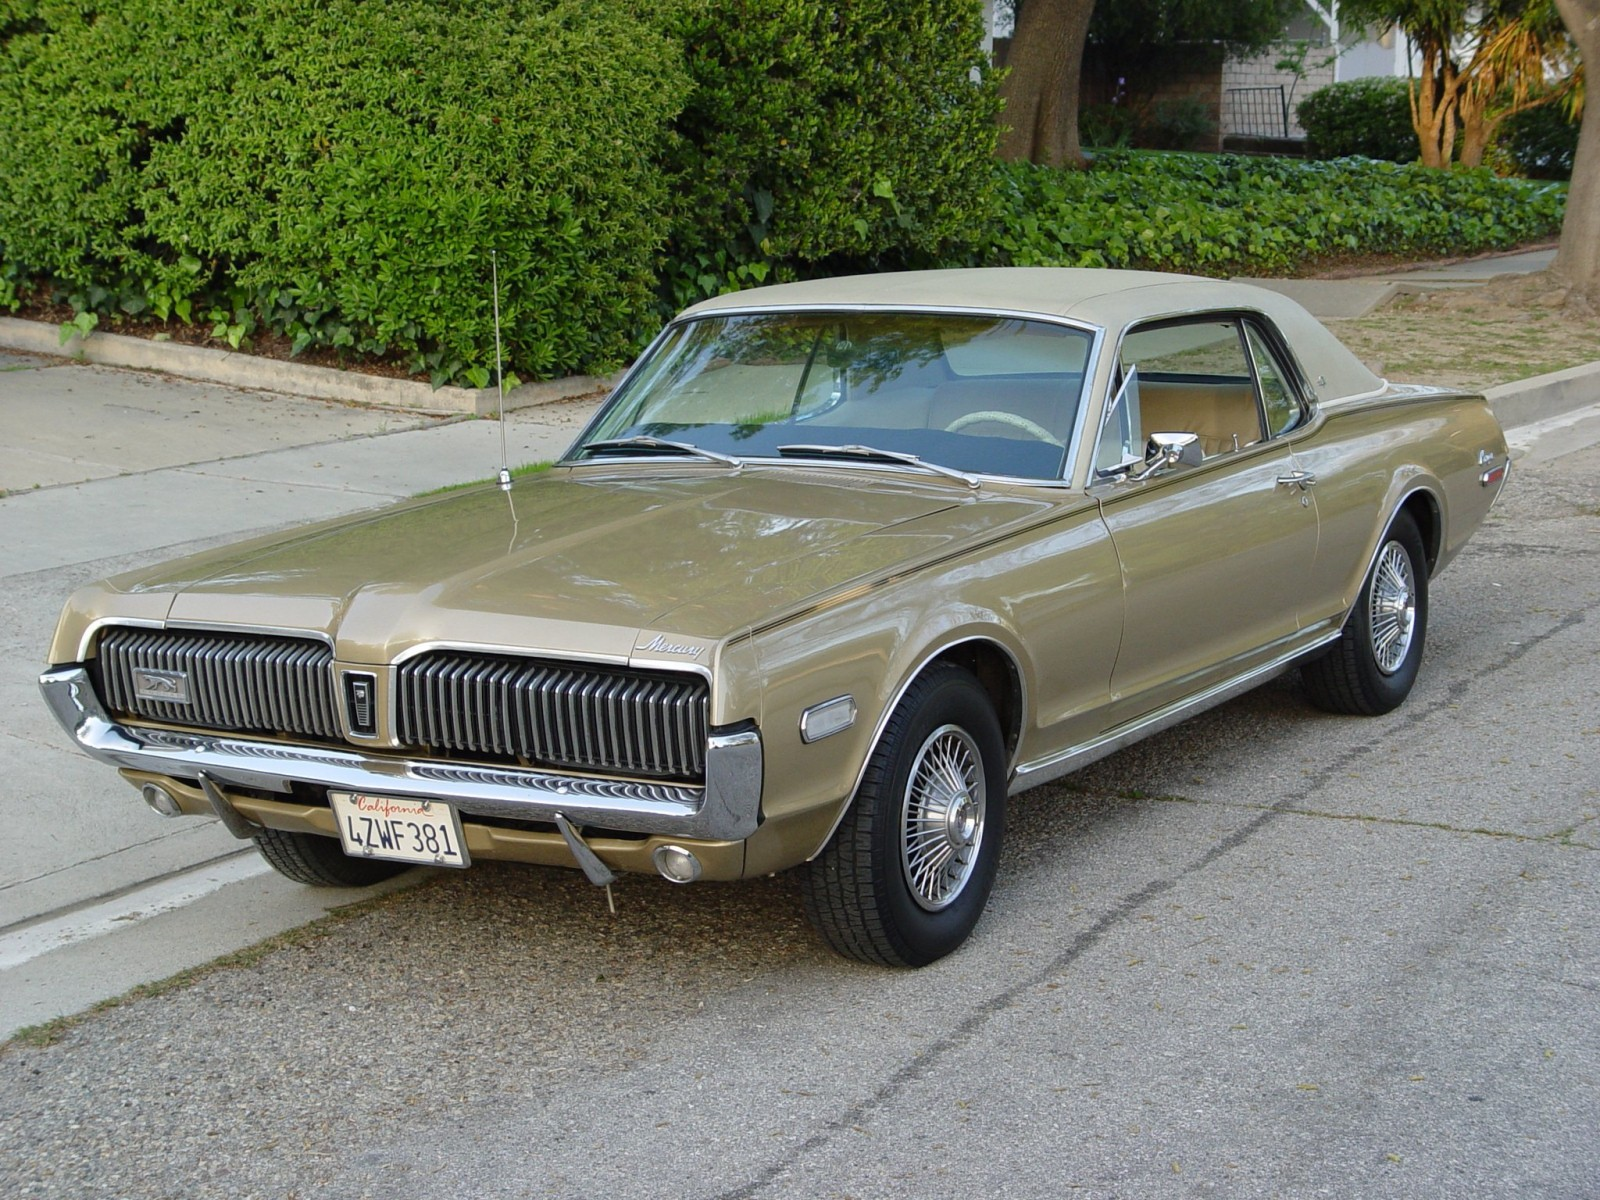 1968 Lincoln Mercury Cougar XT-7